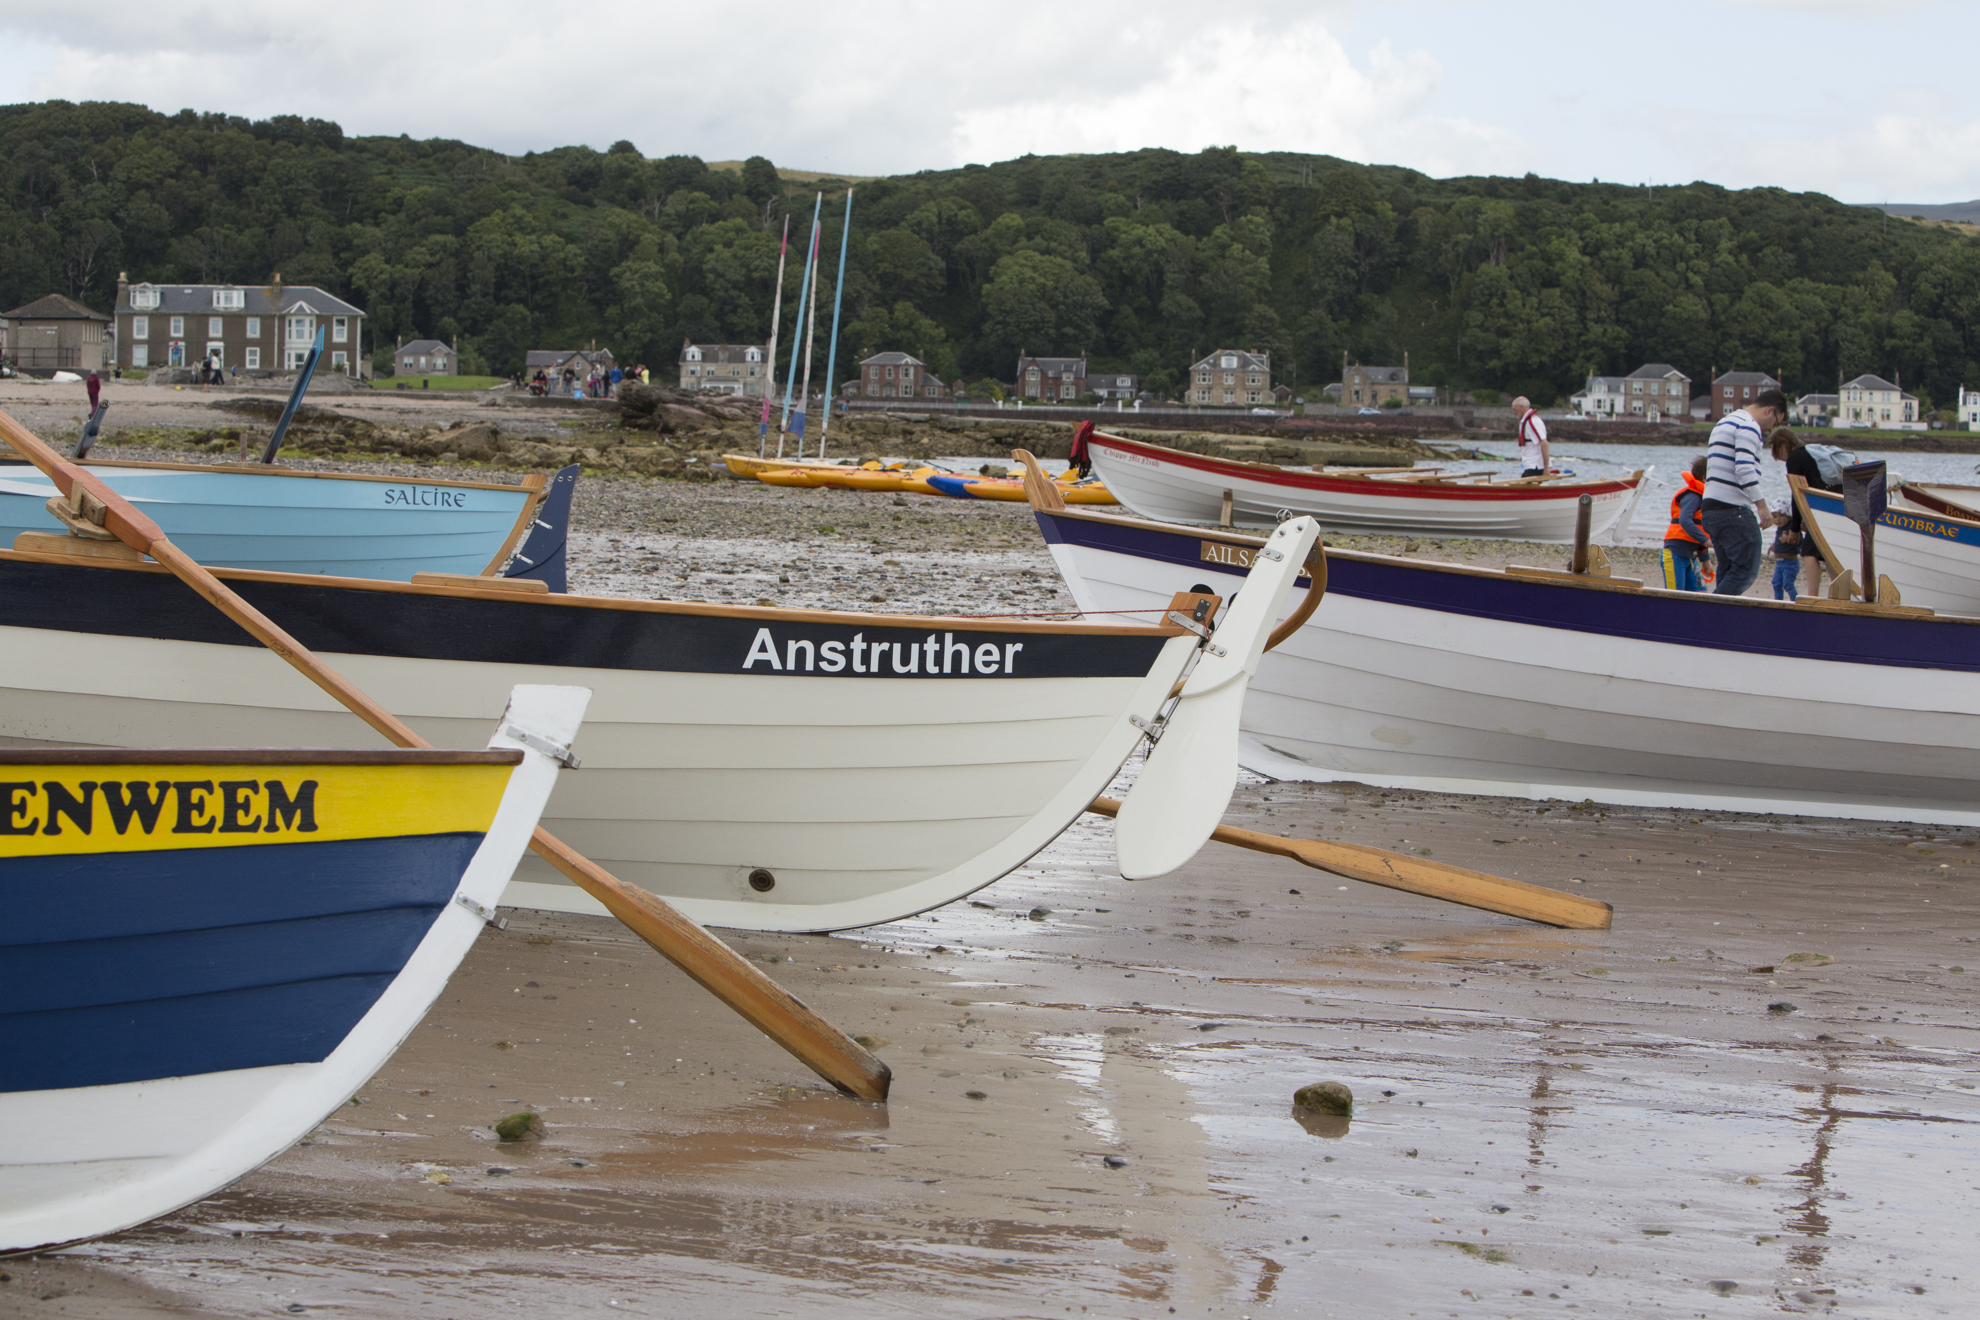 Skiffs are lined up for the Sail and Oar event on Cumbrae.